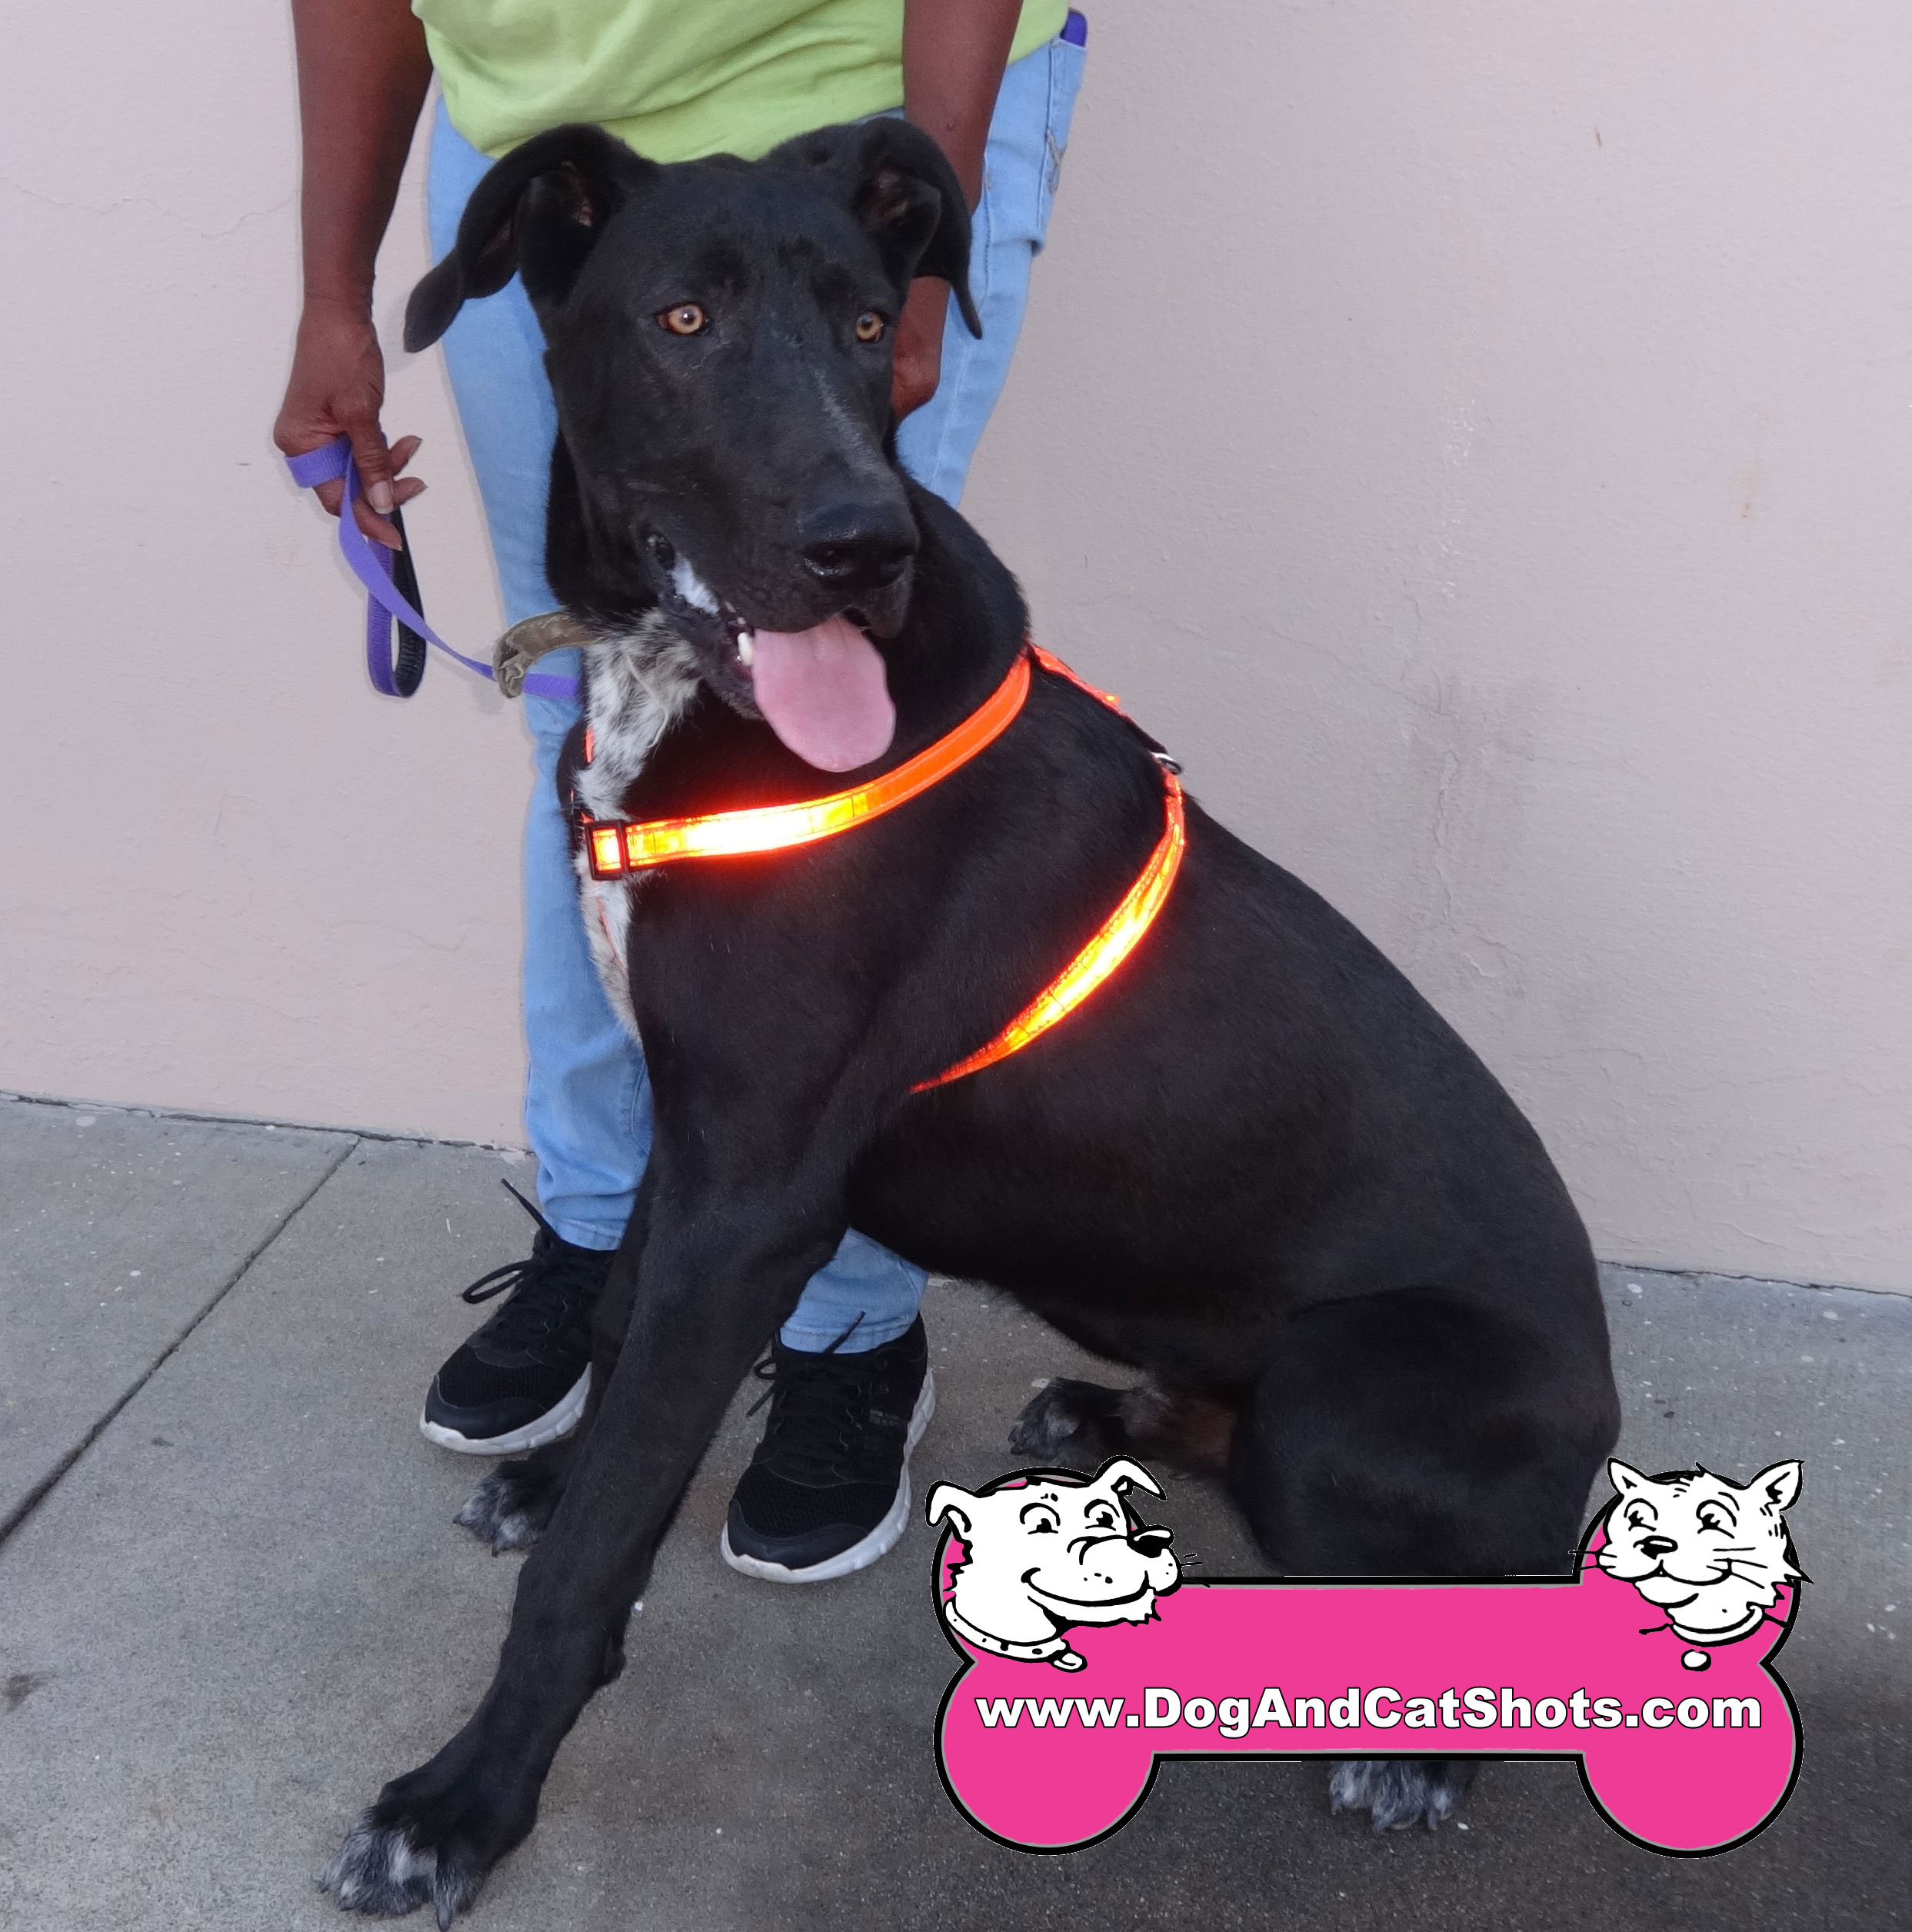 Bently is Young Great Dane Who Is Looking For A New Home!